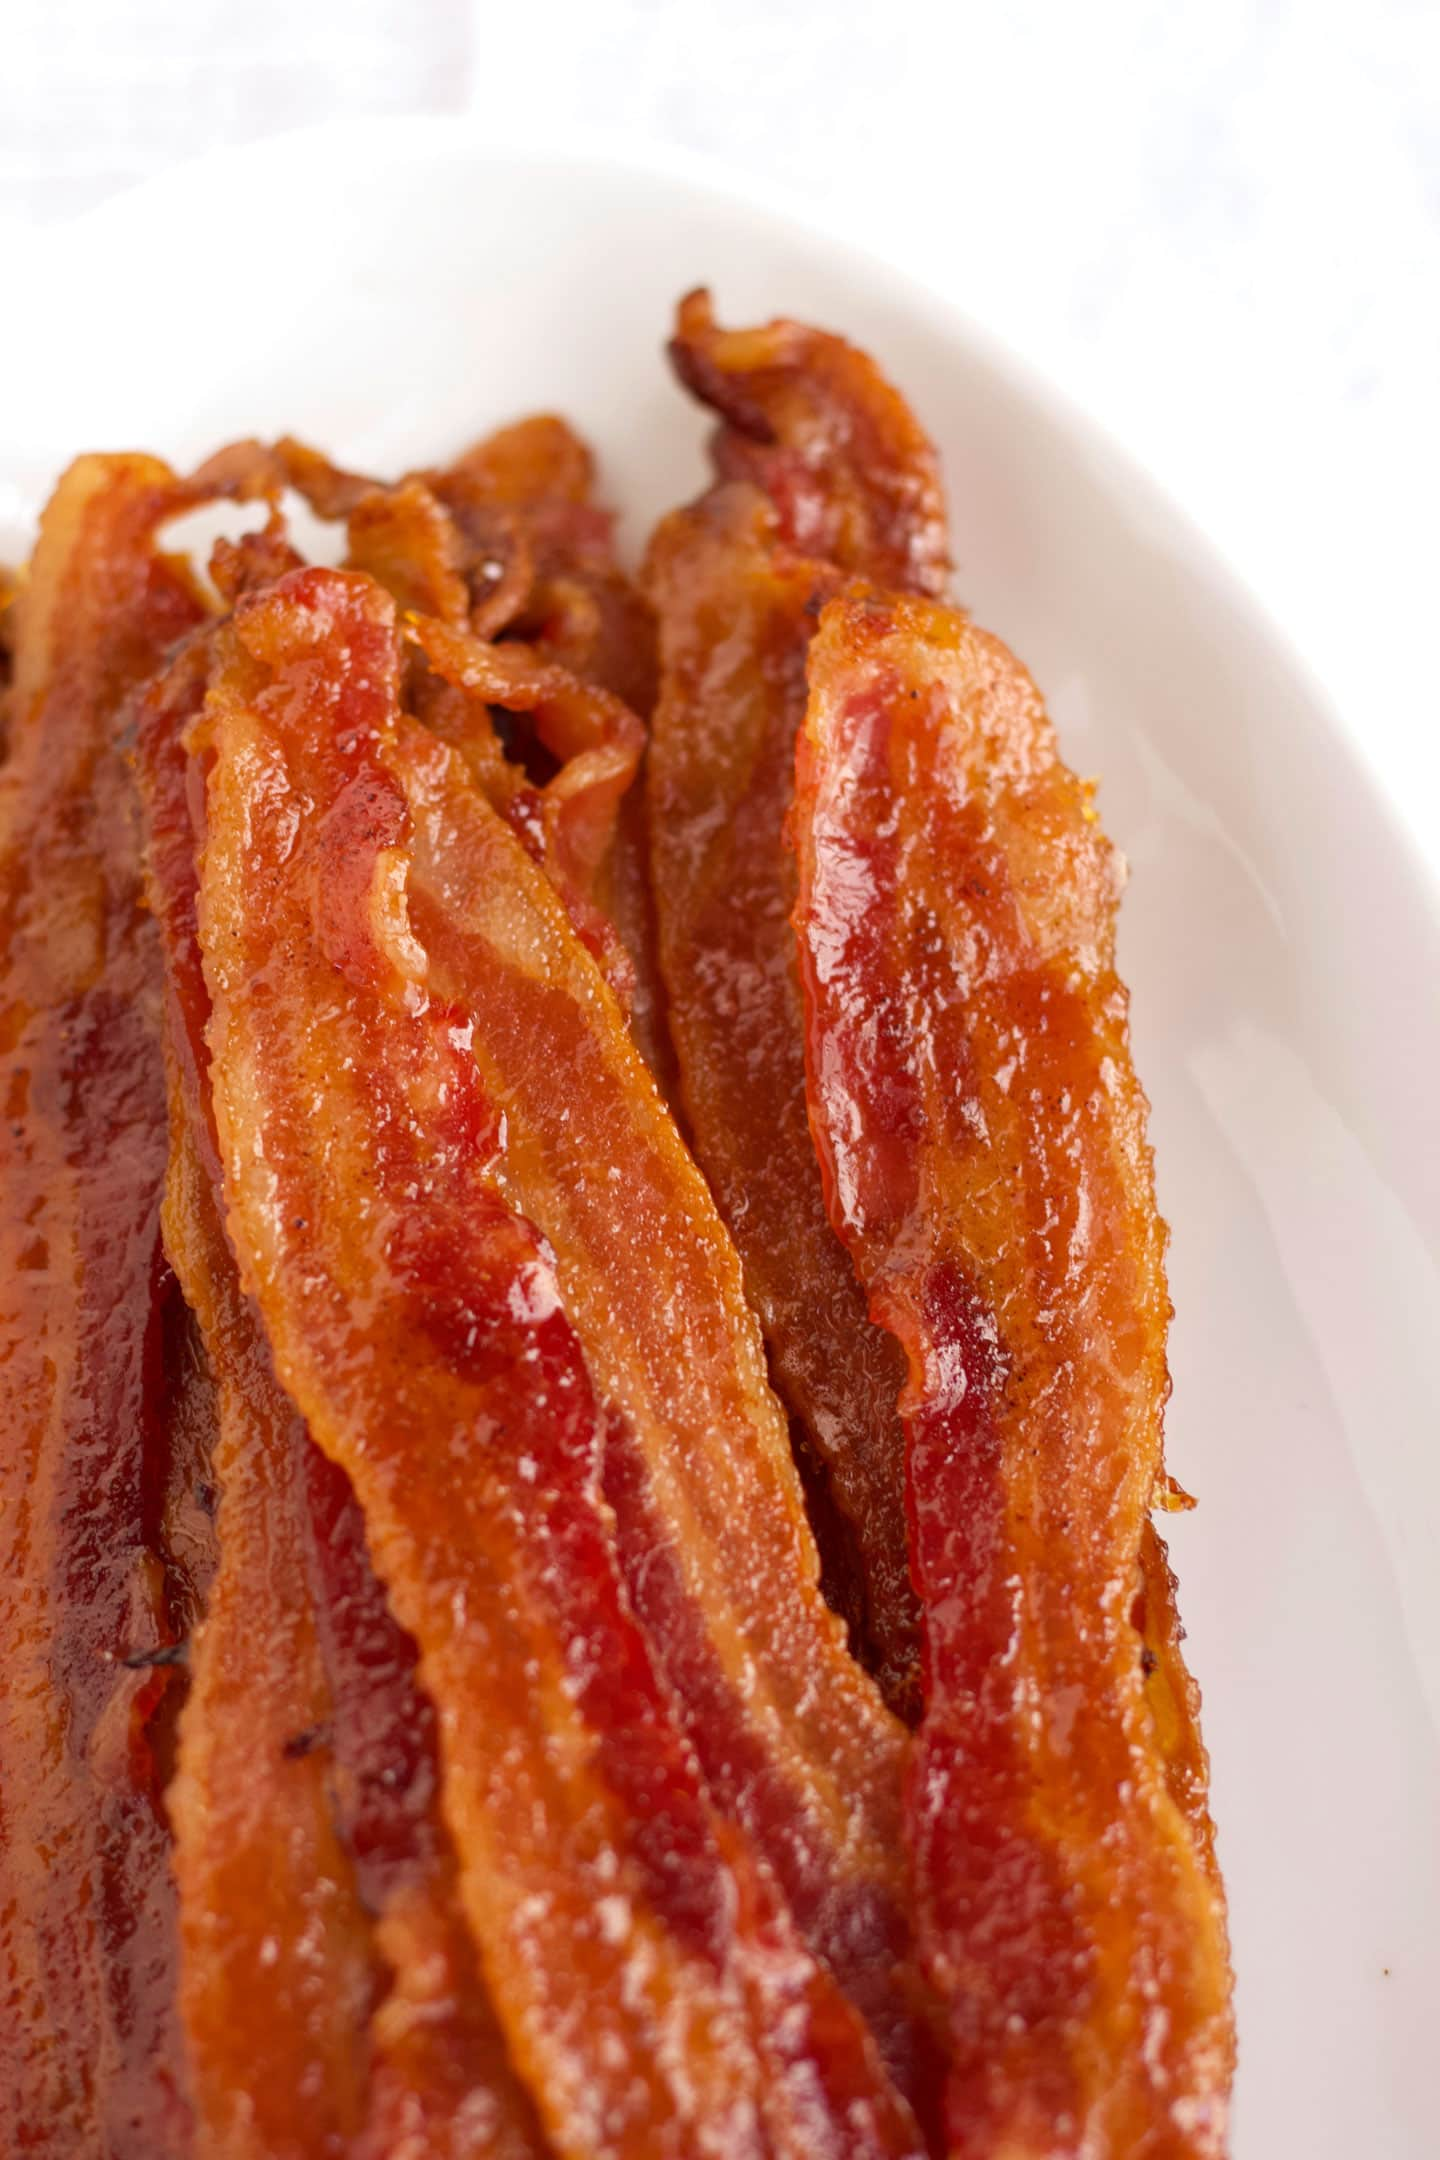 Stacked bacon on plate.